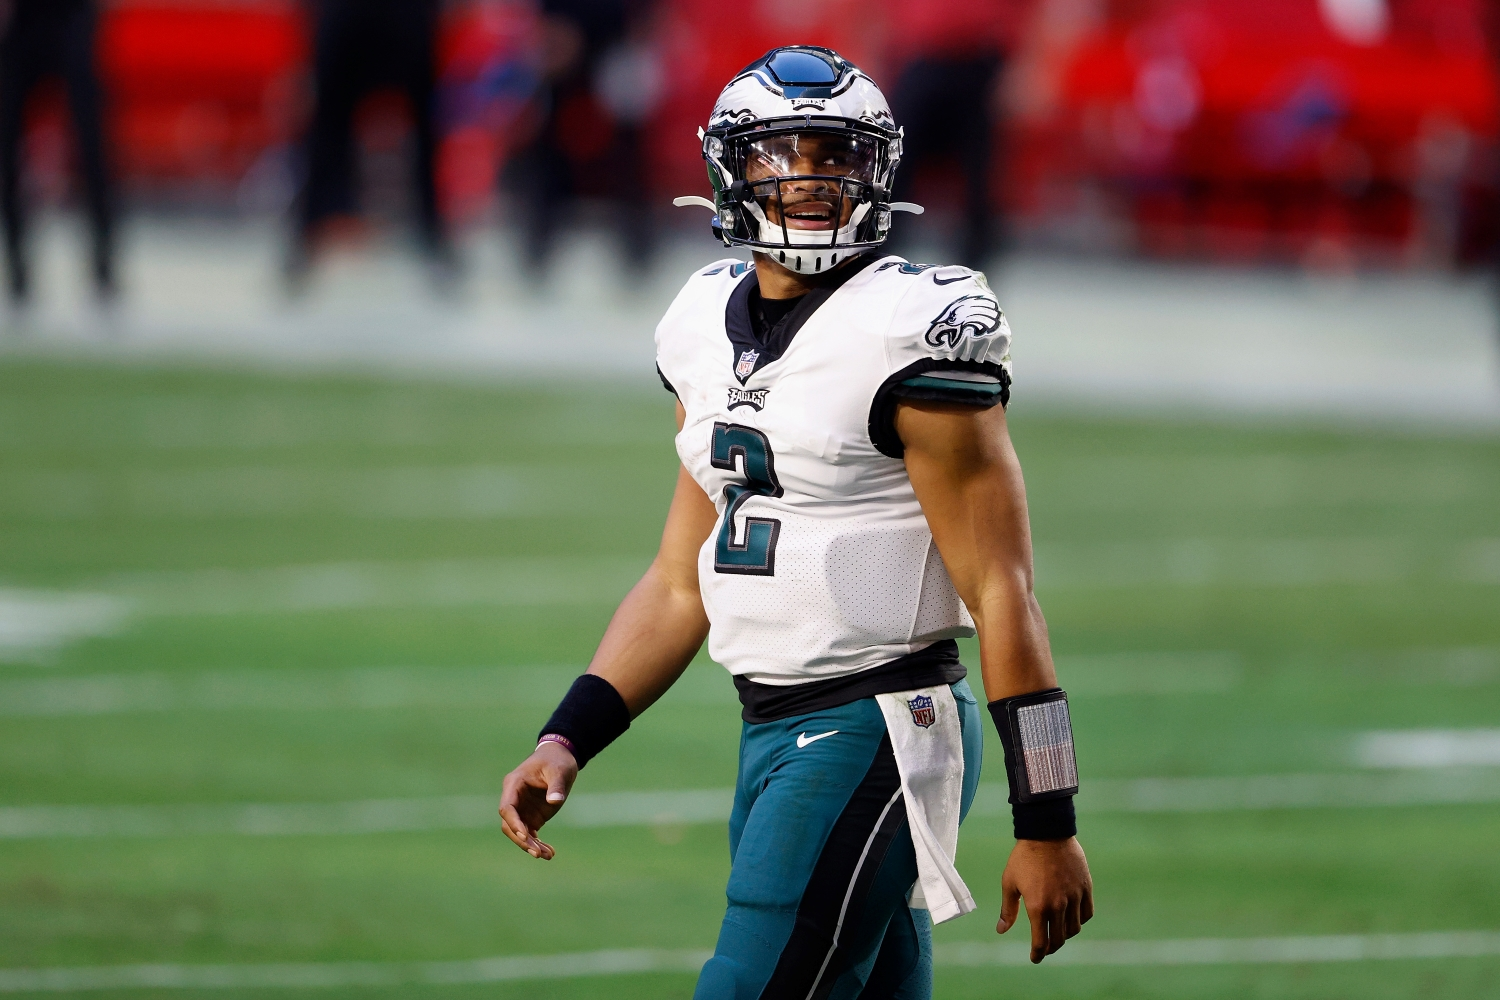 Quarterback Jalen Hurts of the Philadelphia Eagles walks off the field during a game against the Arizona Cardinals.